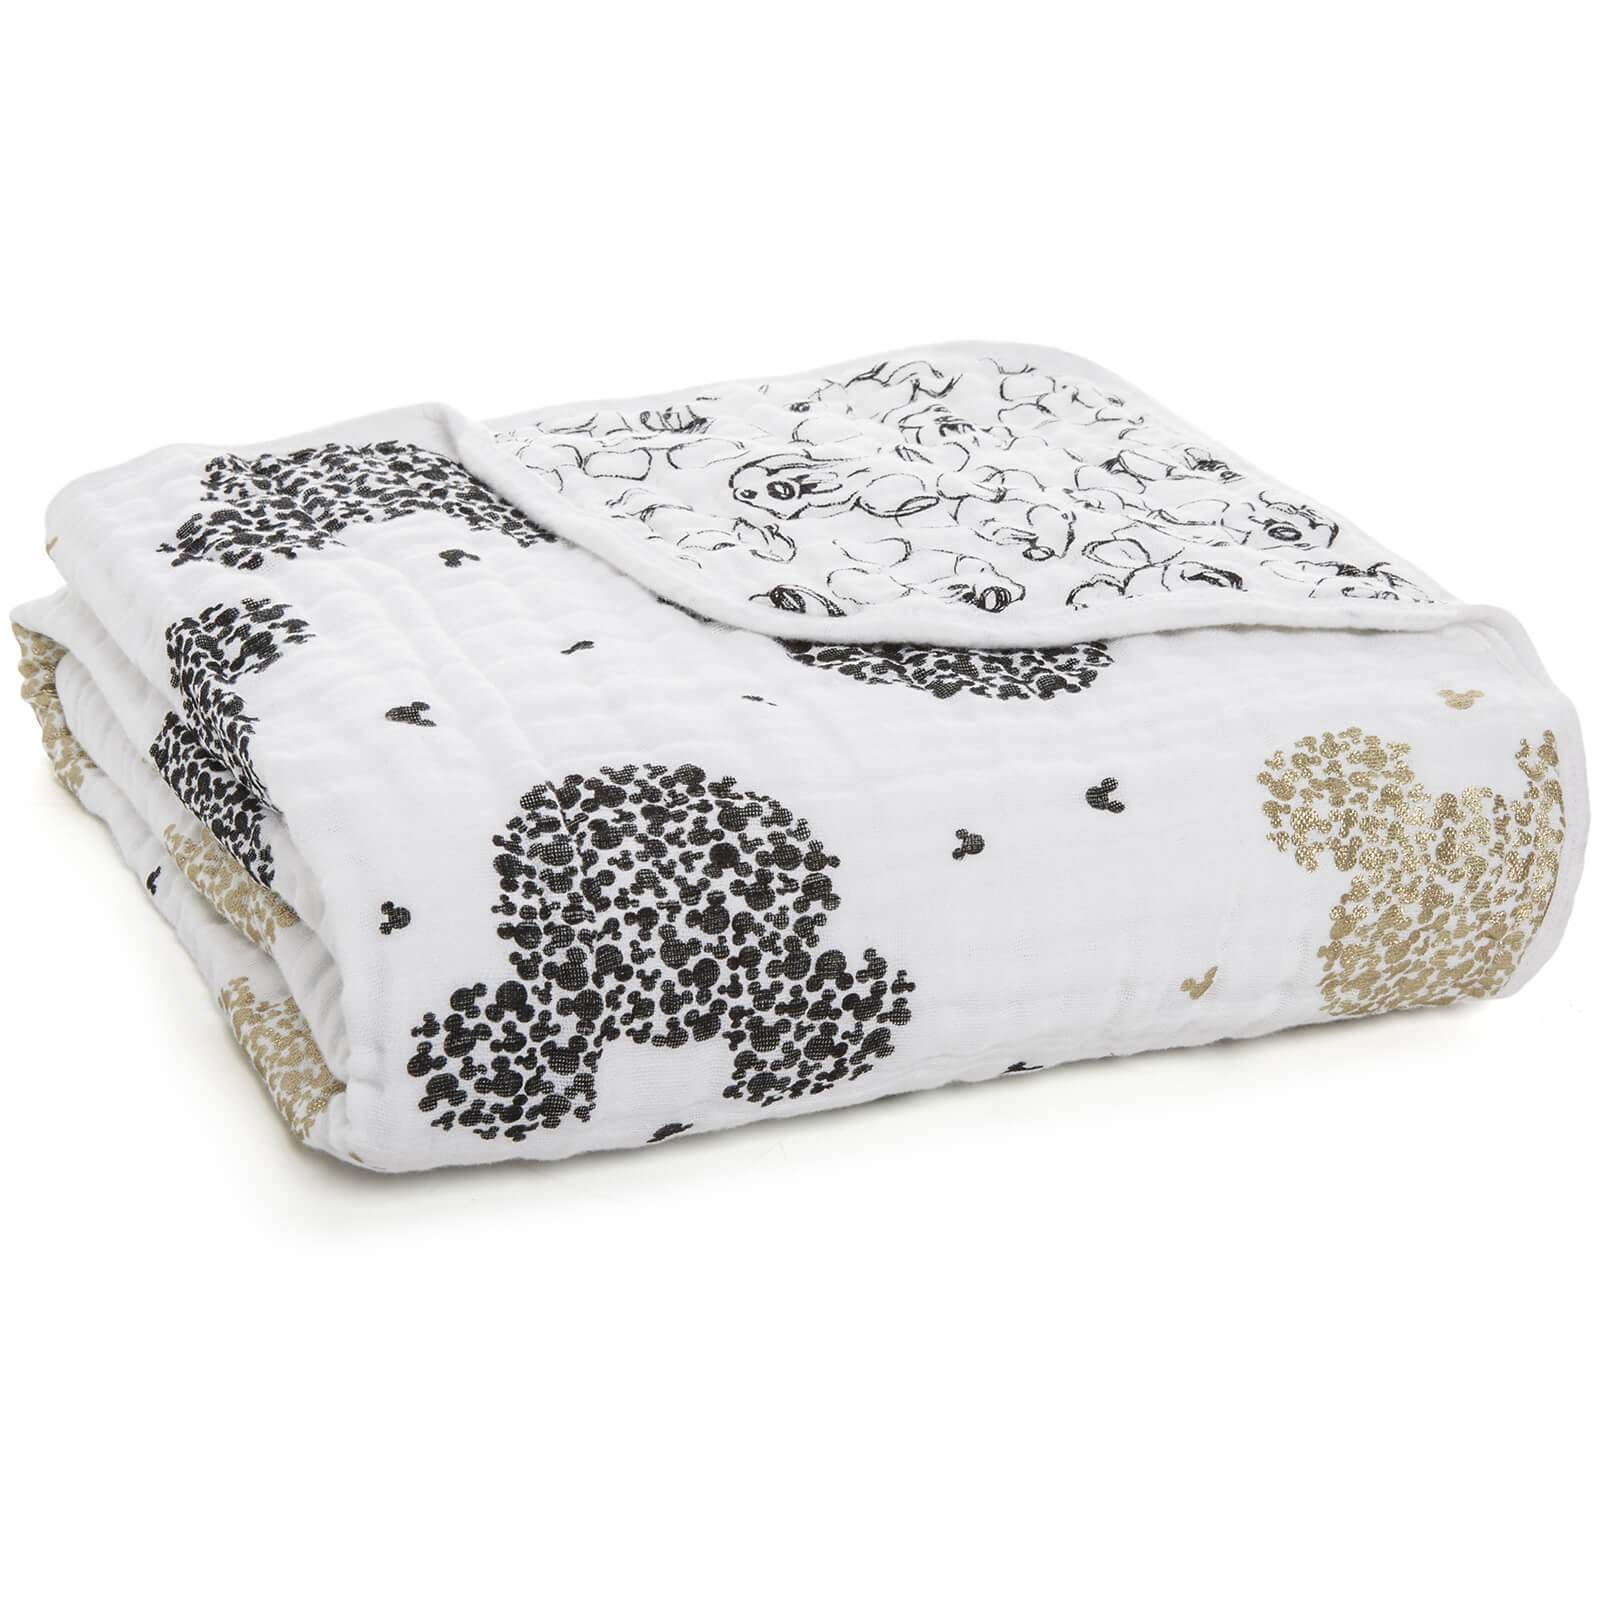 aden + anais Classic Dream Blanket Mickey's 90th - Scatter